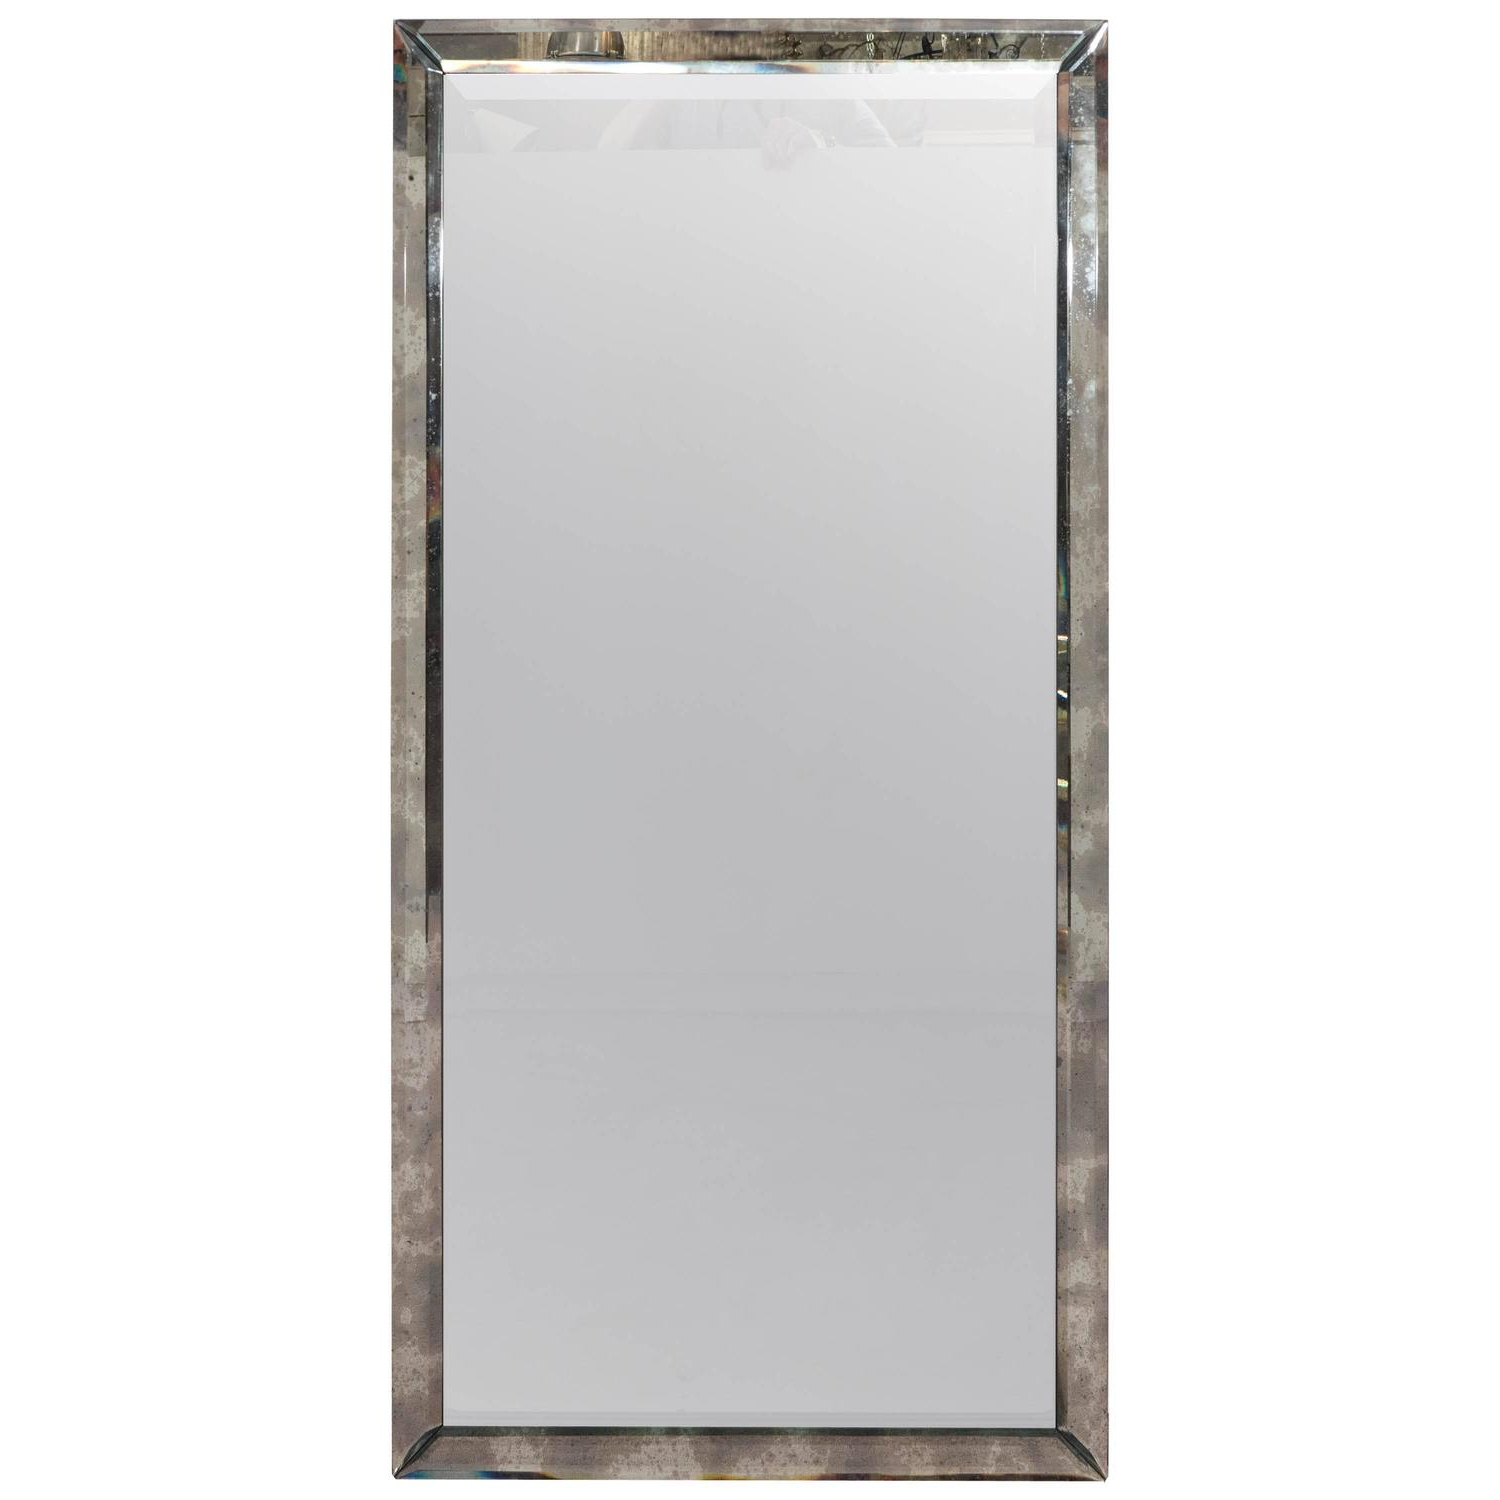 Long Rectangular Wall Mirror In Beveled Distressed Glass Frame Intended For Fashionable Long Wall Mirrors (View 9 of 20)